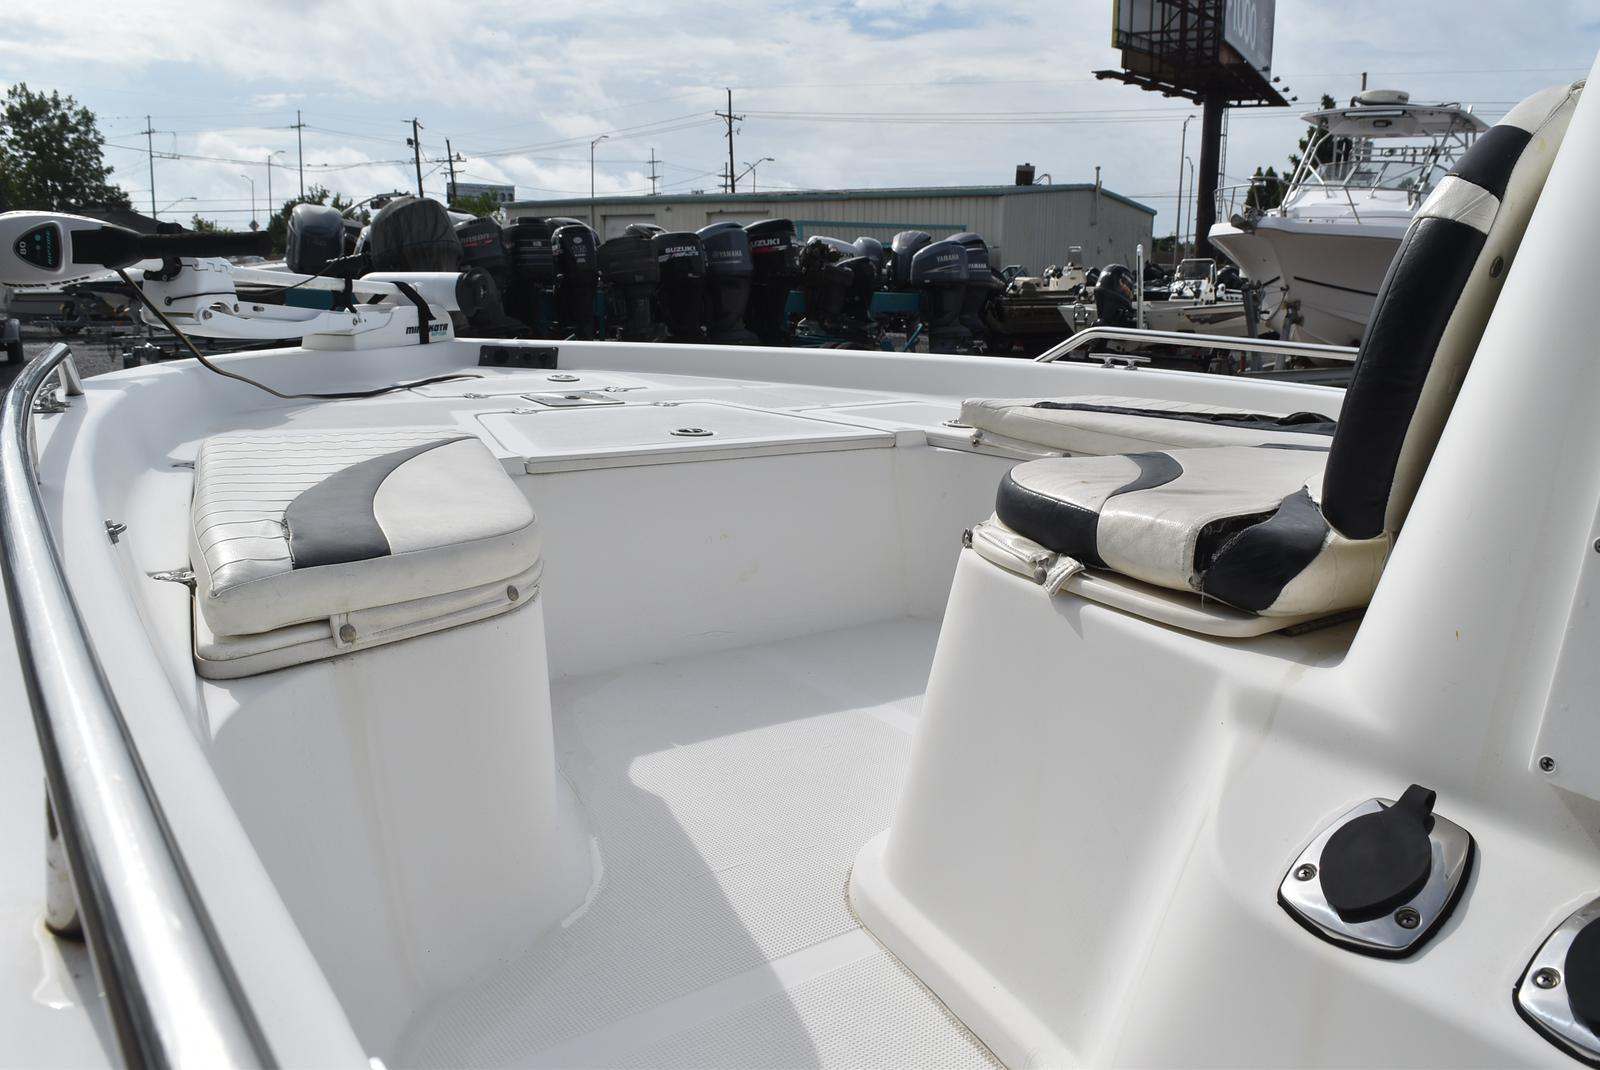 2006 Bay Stealth boat for sale, model of the boat is 2030 & Image # 11 of 12